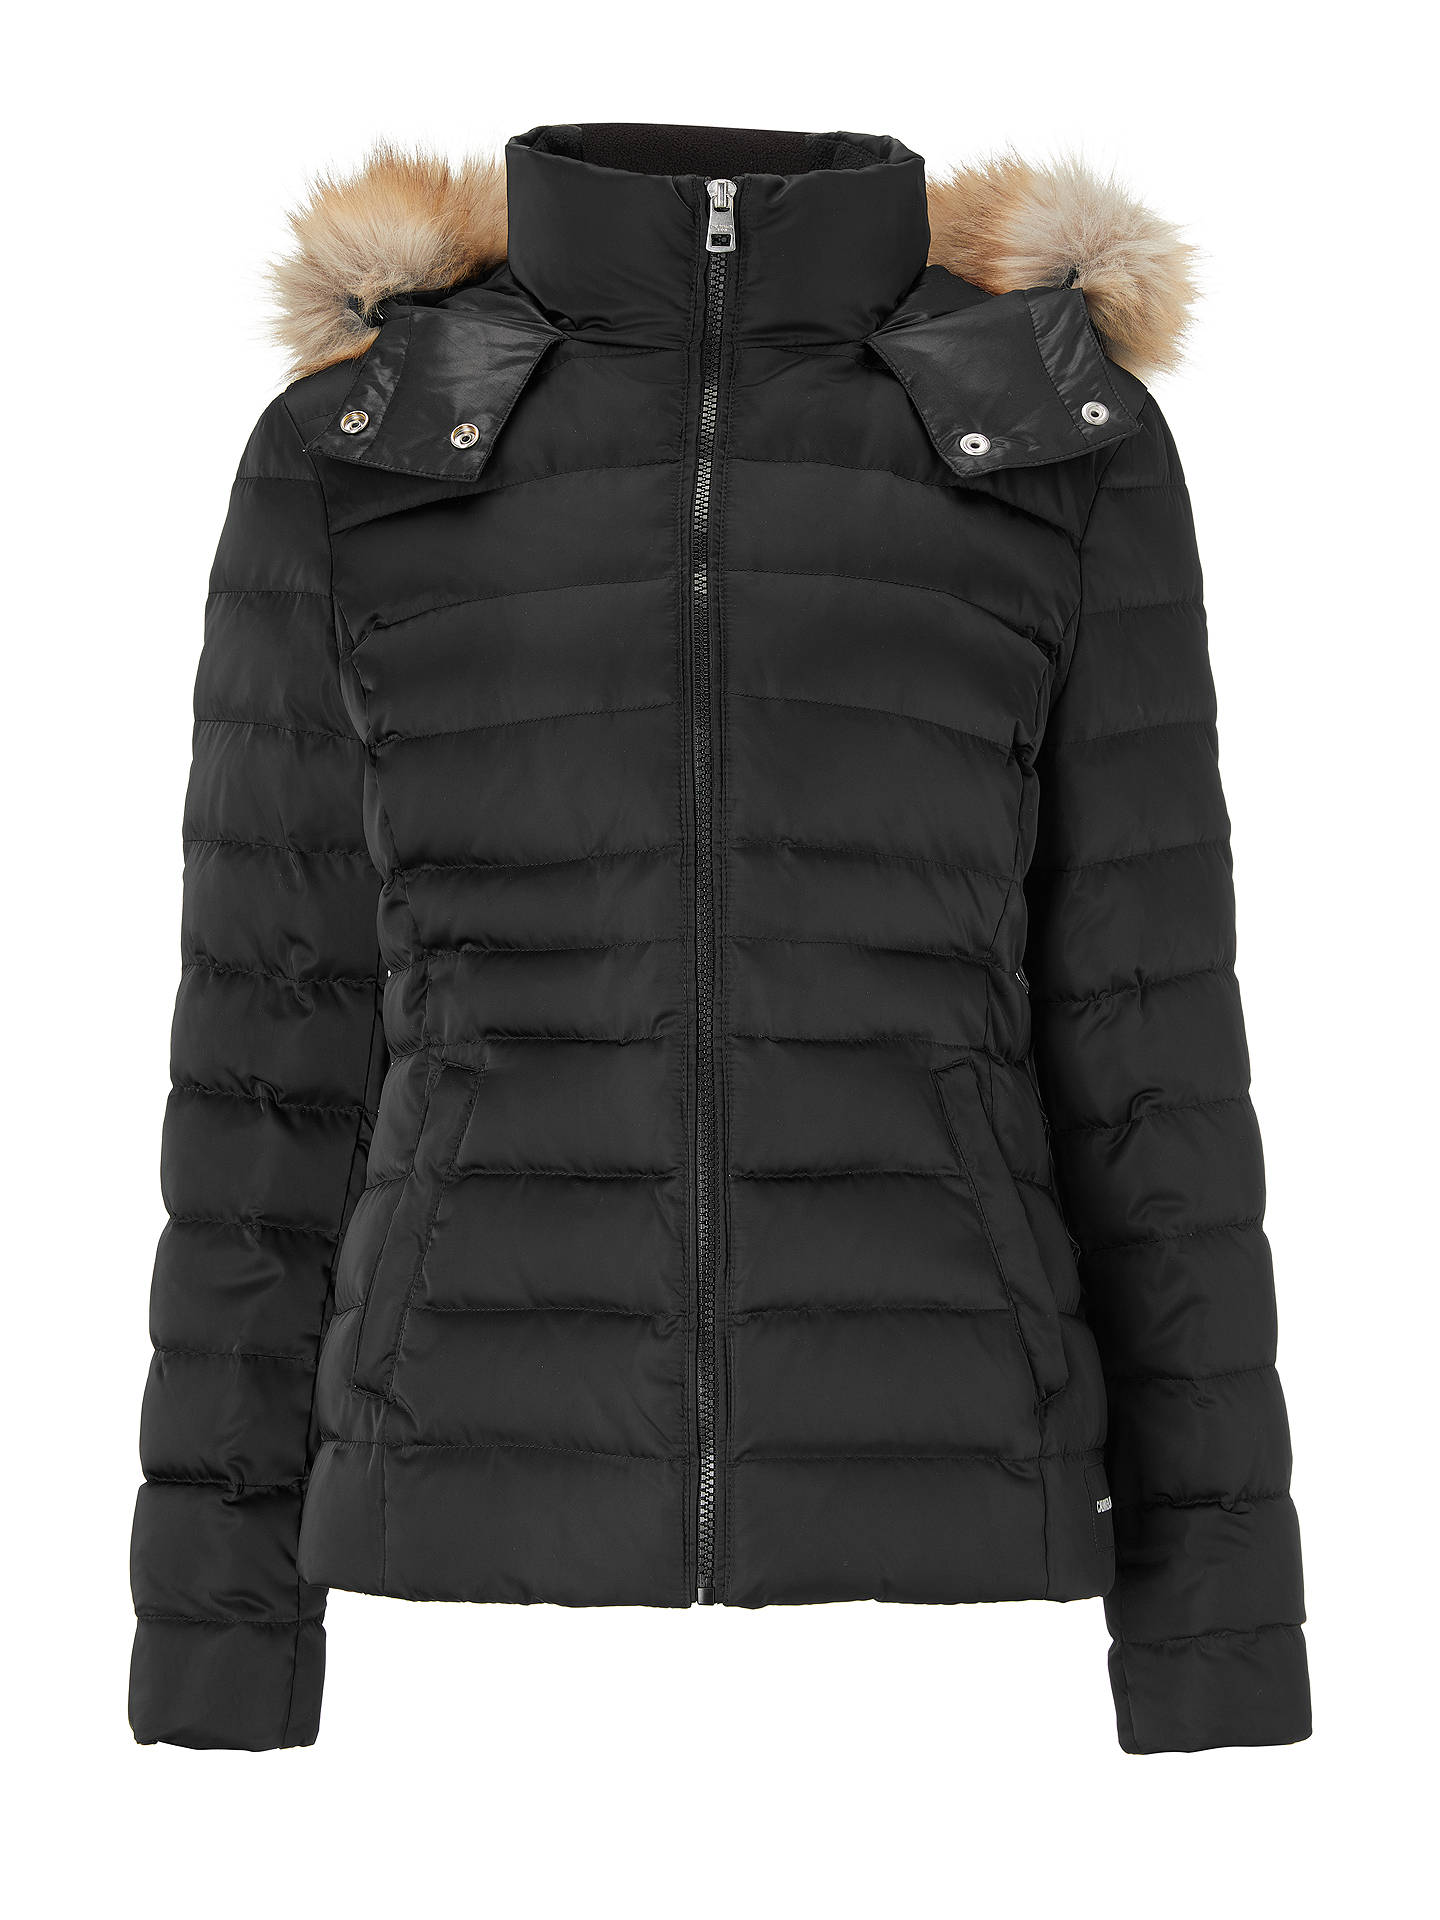 BuyCalvin Klein Mid Weight Down Jacket, Black, XS Online at johnlewis.com